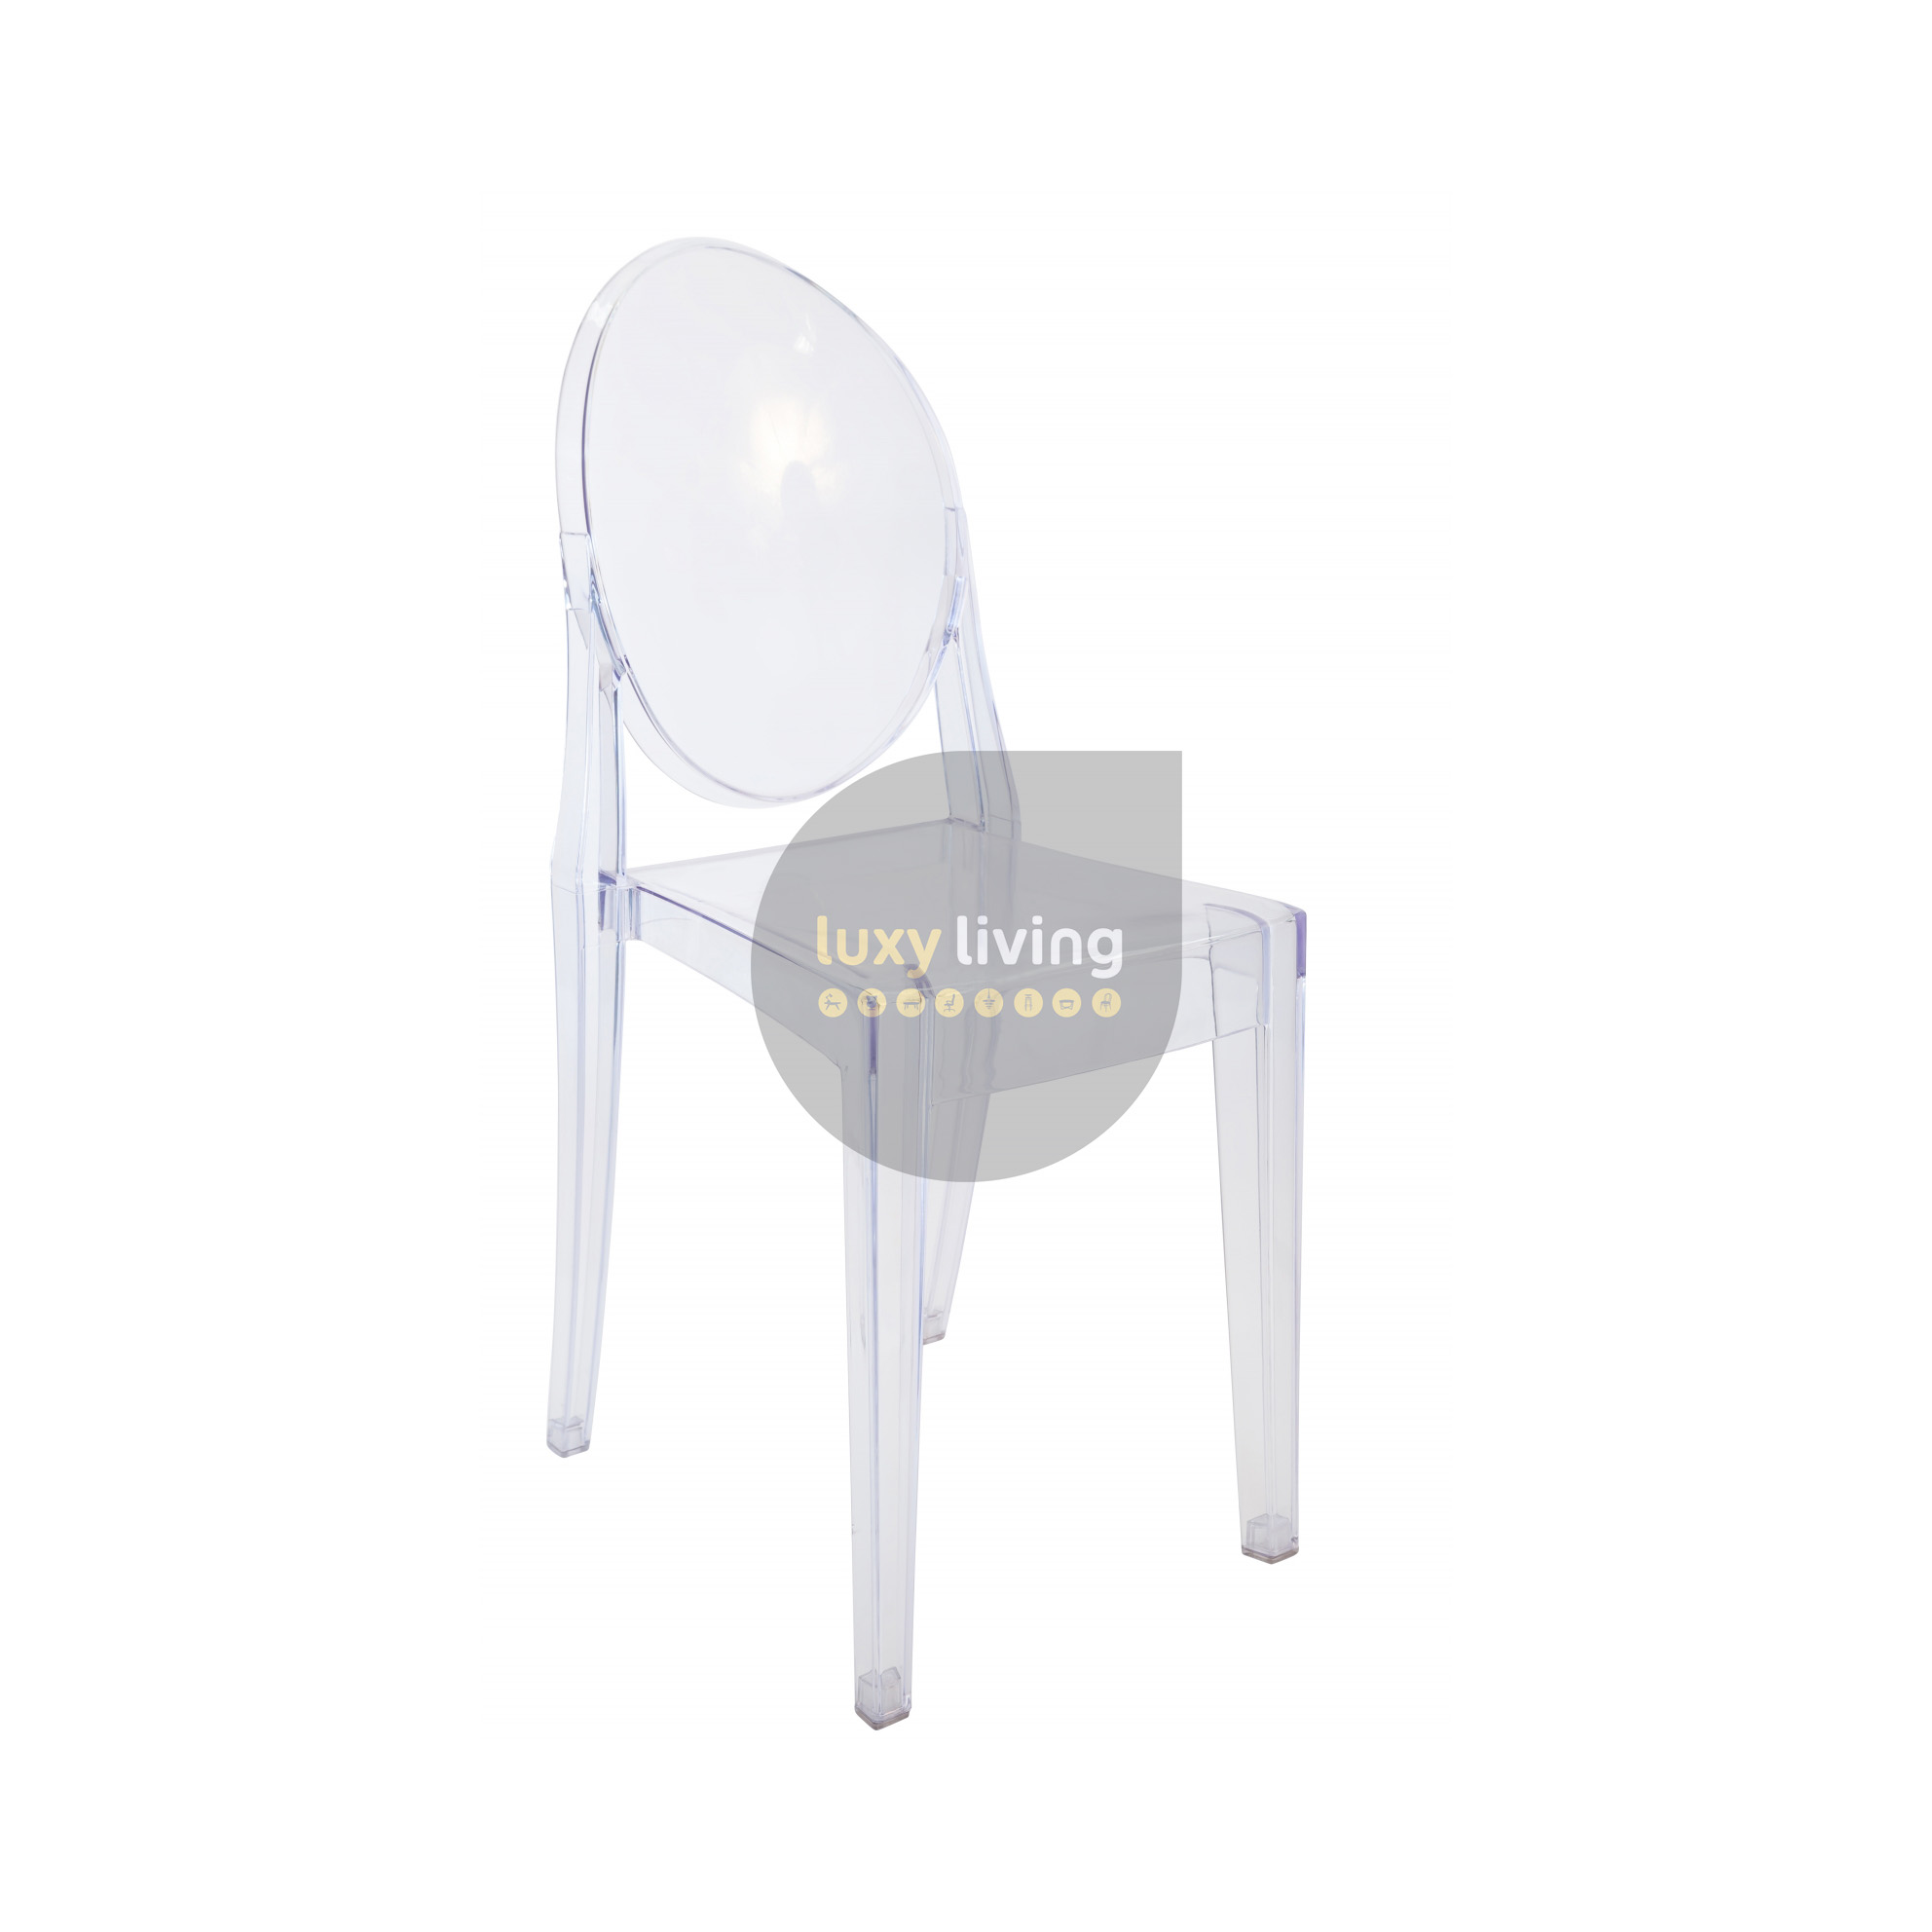 to couture room chairs kartell louis chair visual bring ghost product lightness the preselected